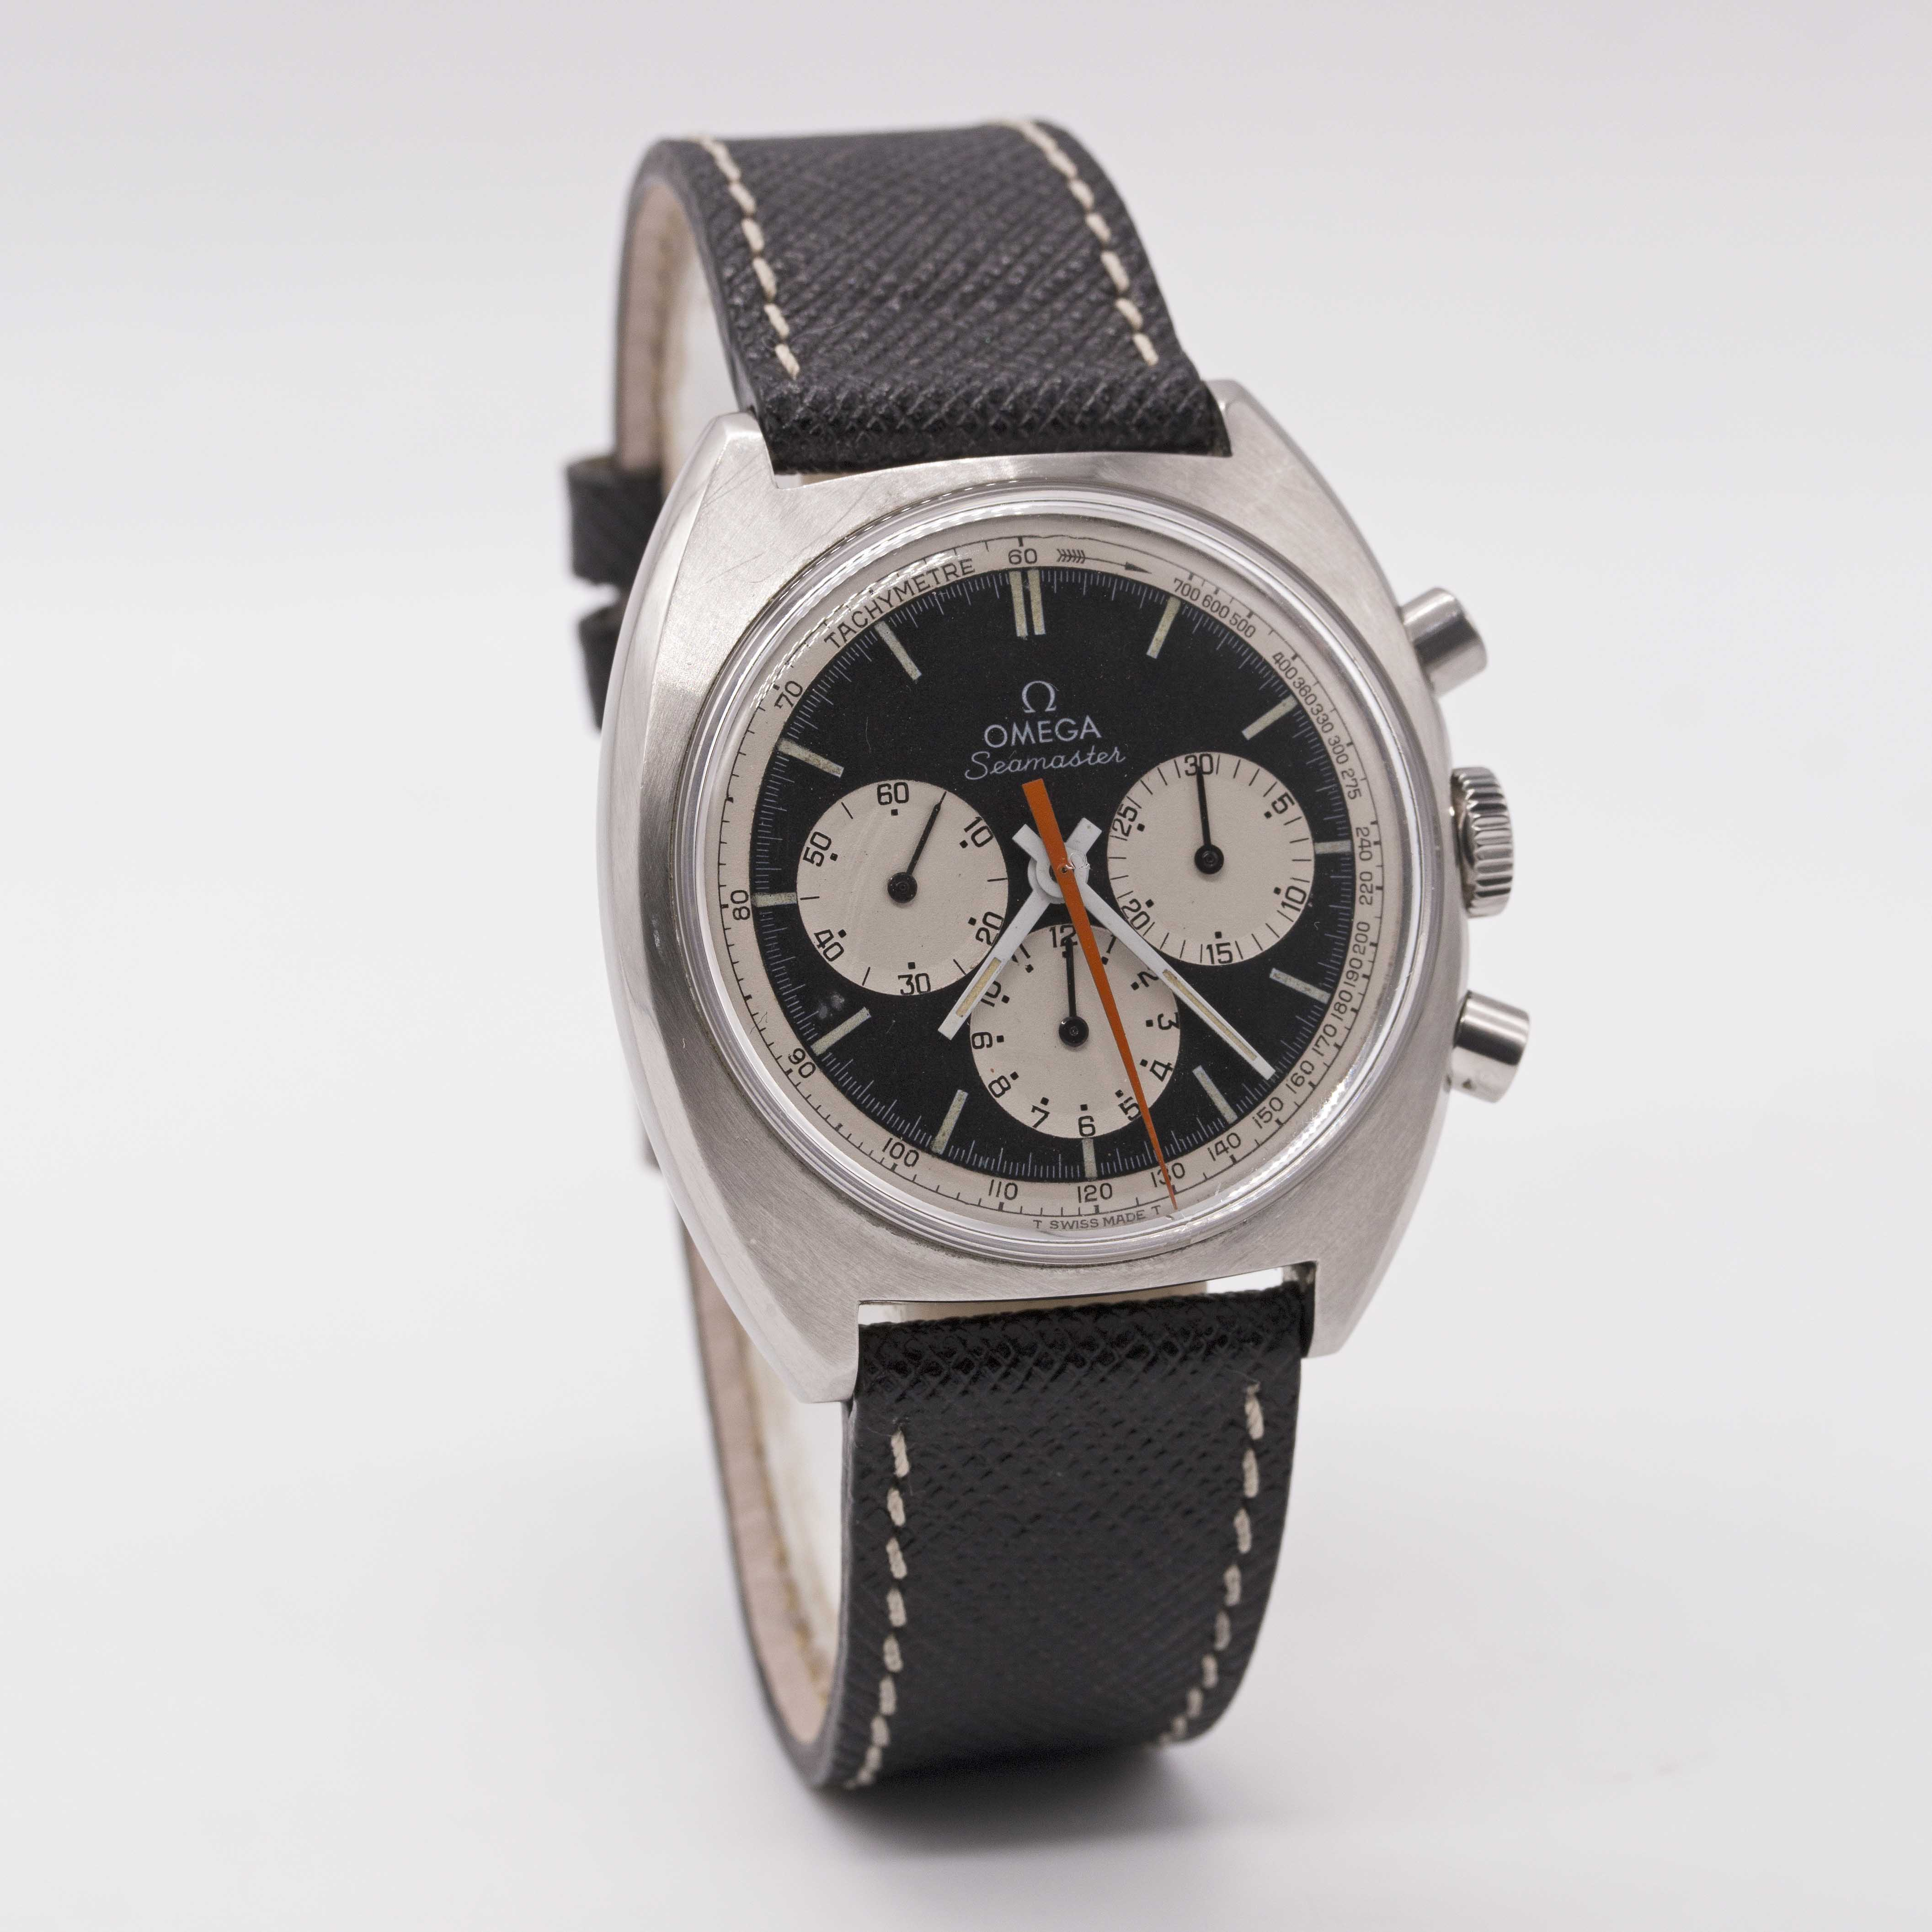 Lot 27 - A GENTLEMAN'S STAINLESS STEEL OMEGA SEAMASTER CHRONOGRAPH WRIST WATCH CIRCA 1967, REF. 145.006-66